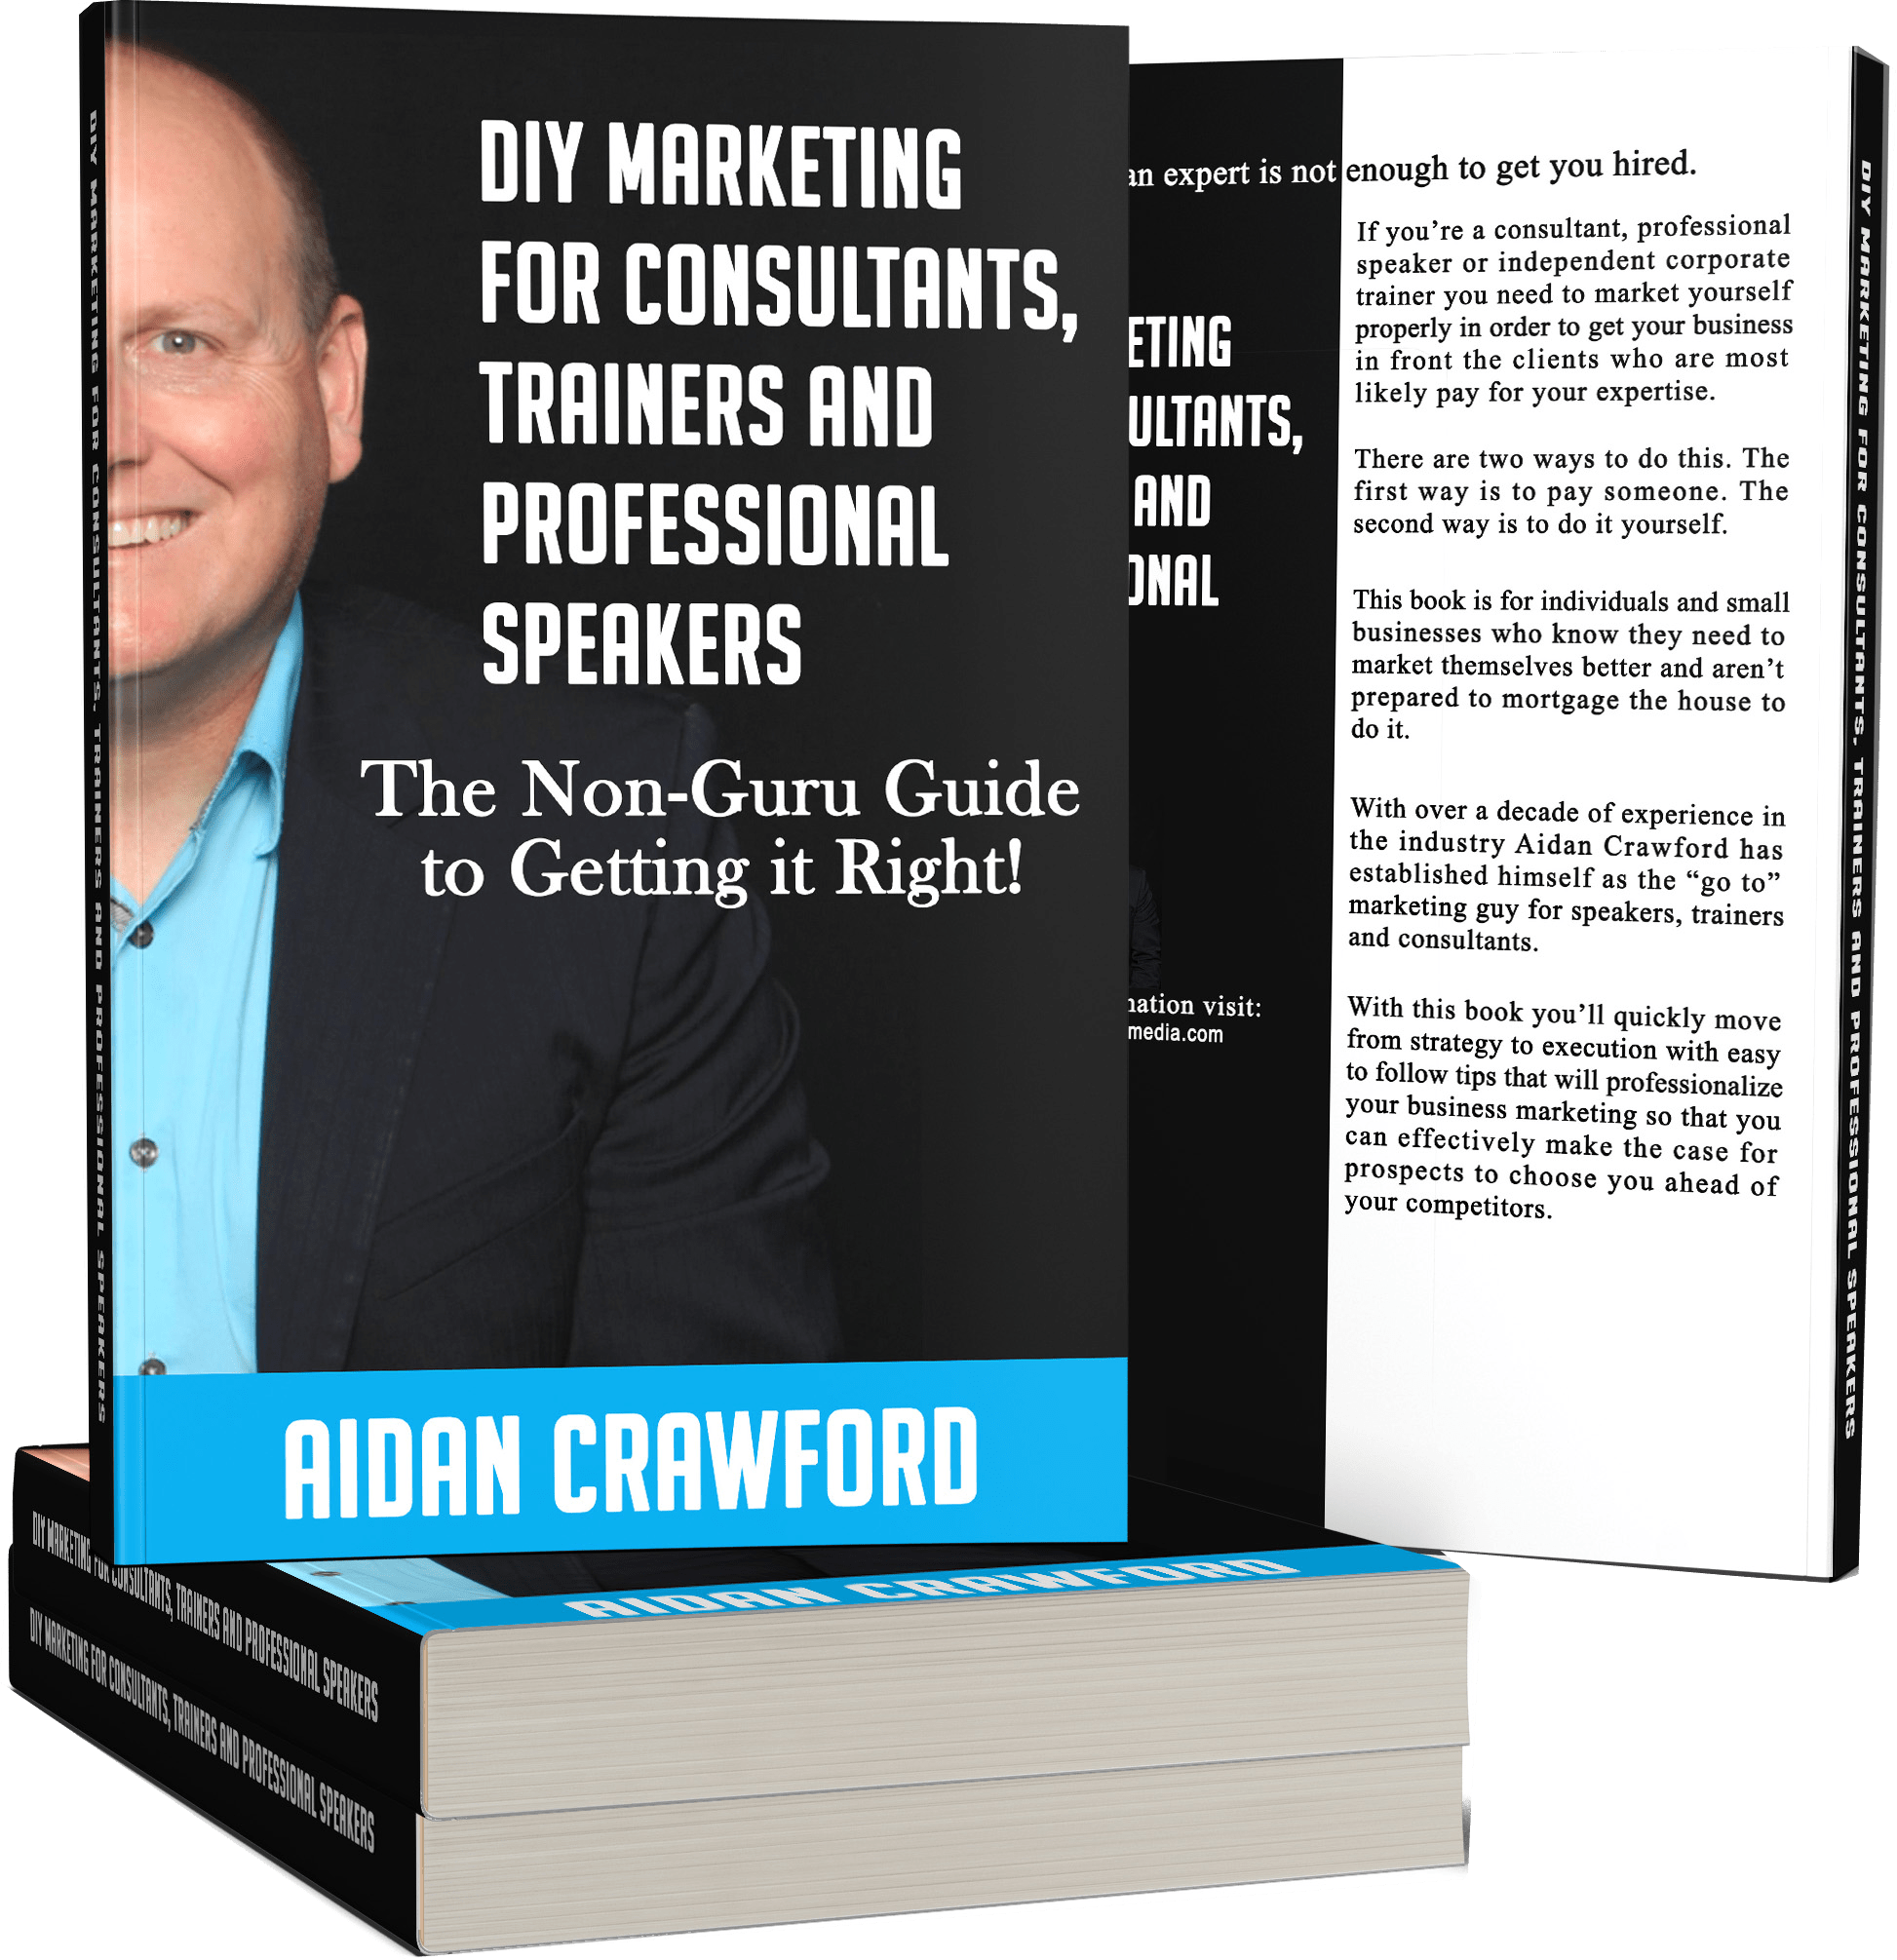 Do it yourself marketing for consultants, trainers and